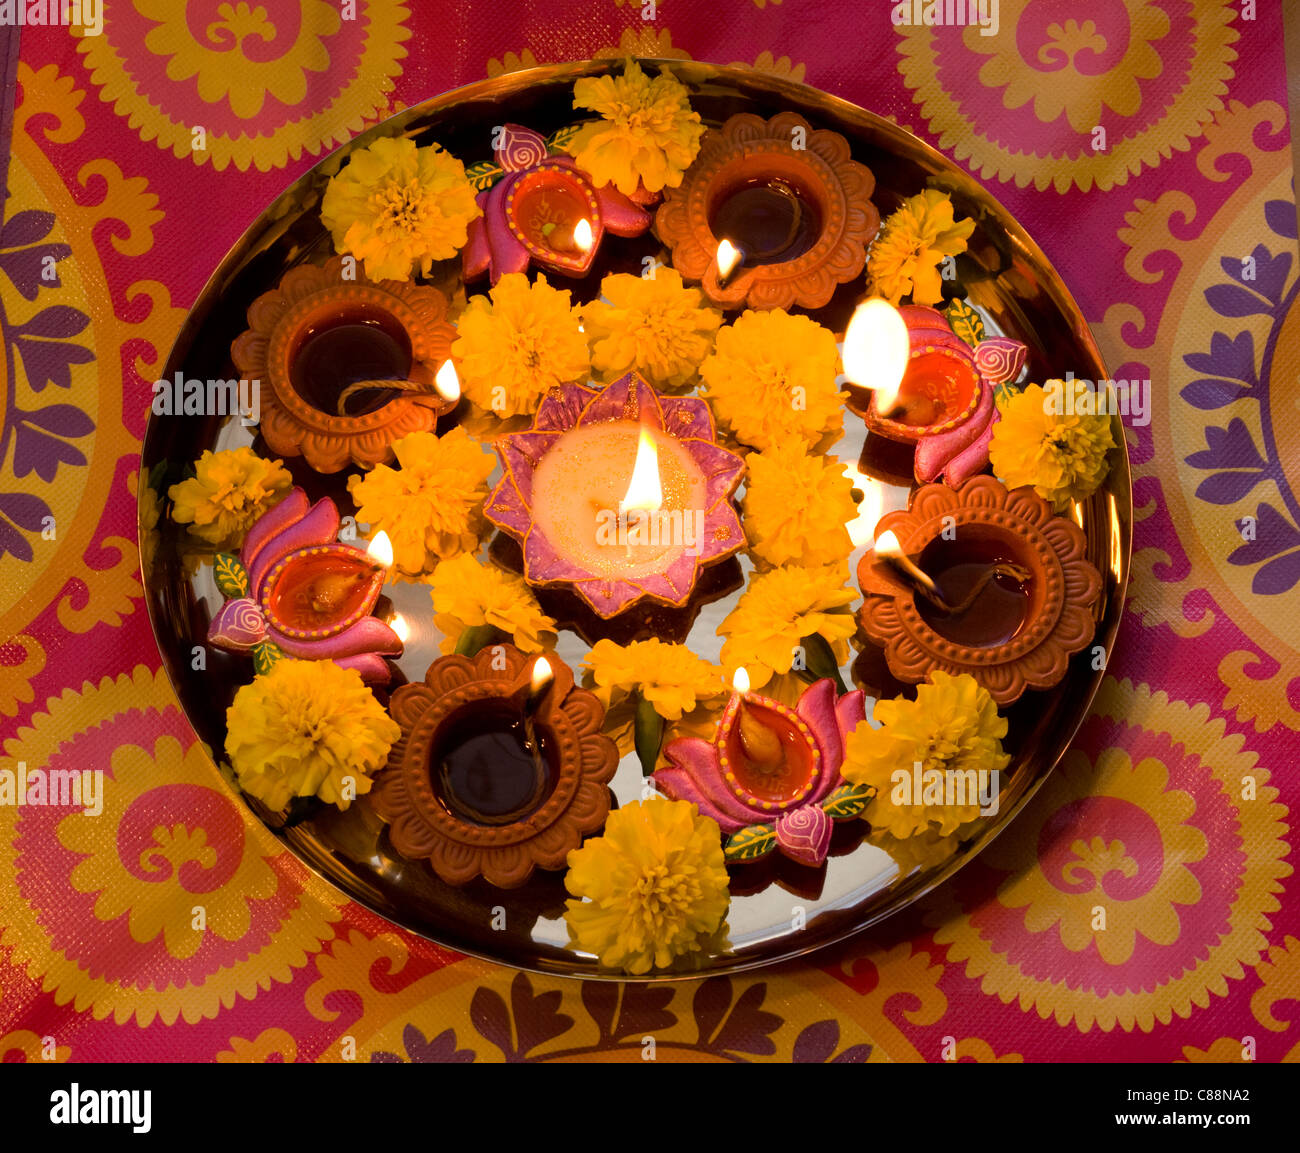 Diwali candles lit for Indian holiday of Diwali, India - Stock Image